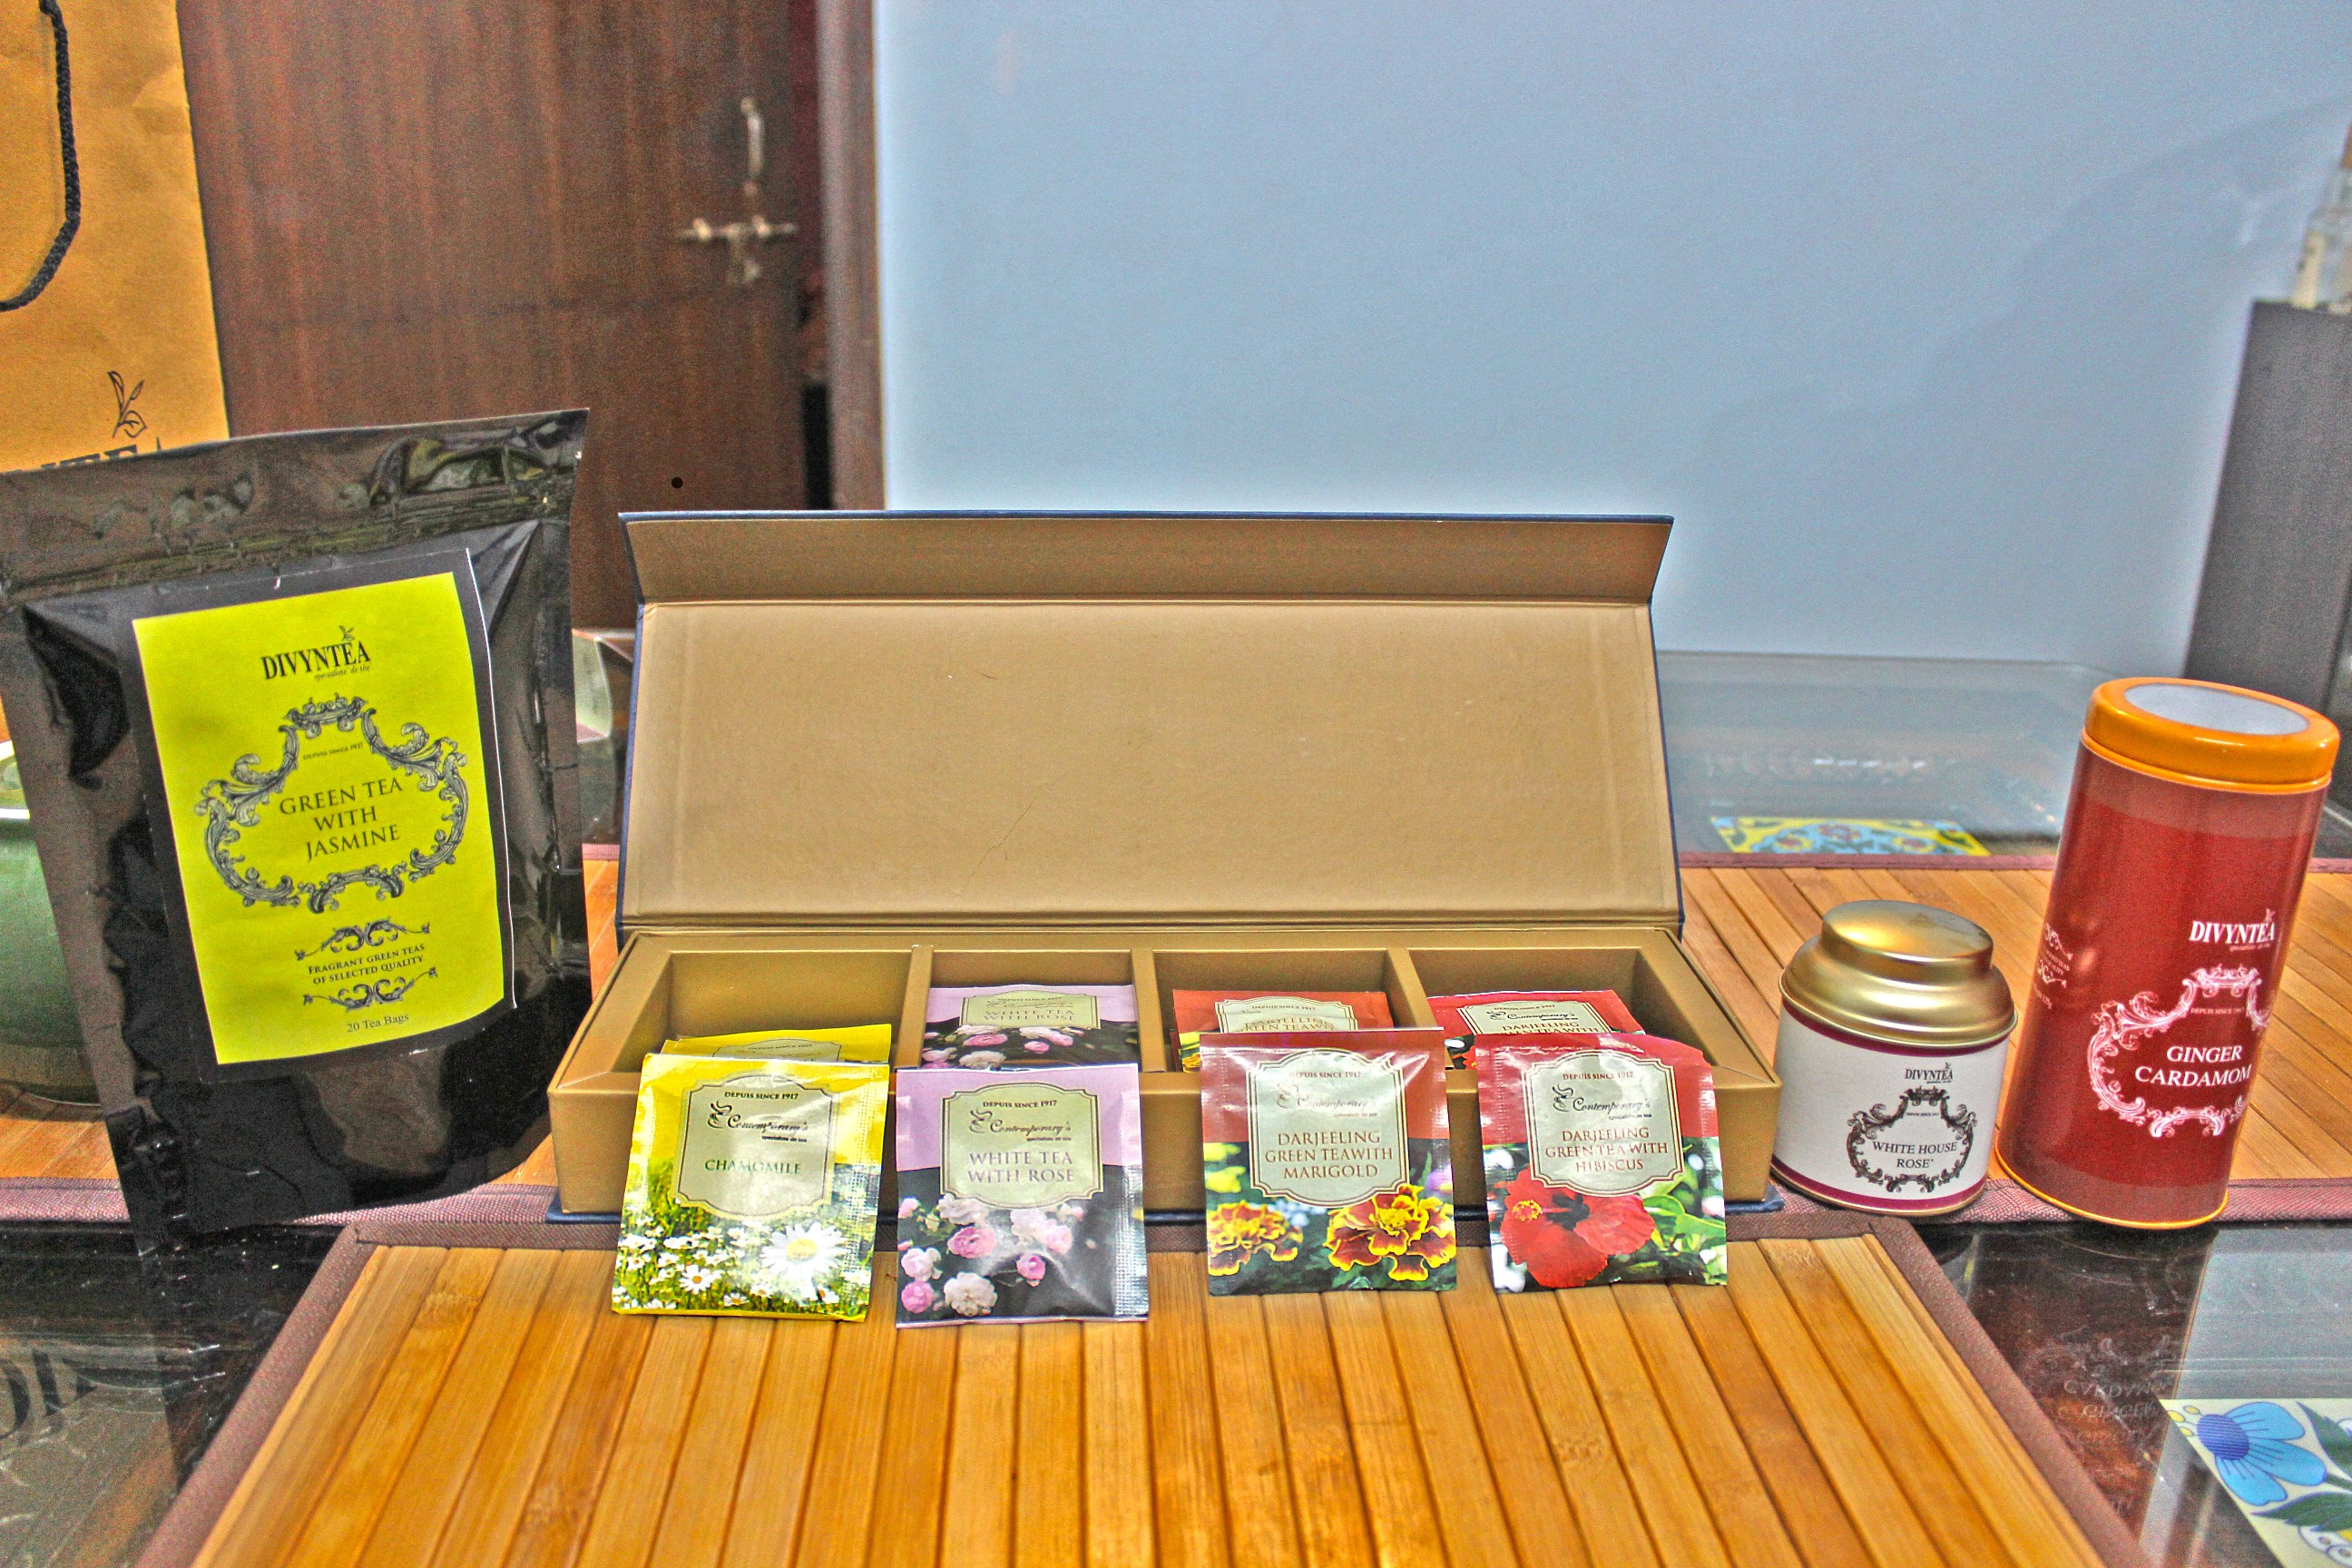 A Luxury Tea Brand That Offers Different Types of Tea for All Tea Lovers| Divyntea